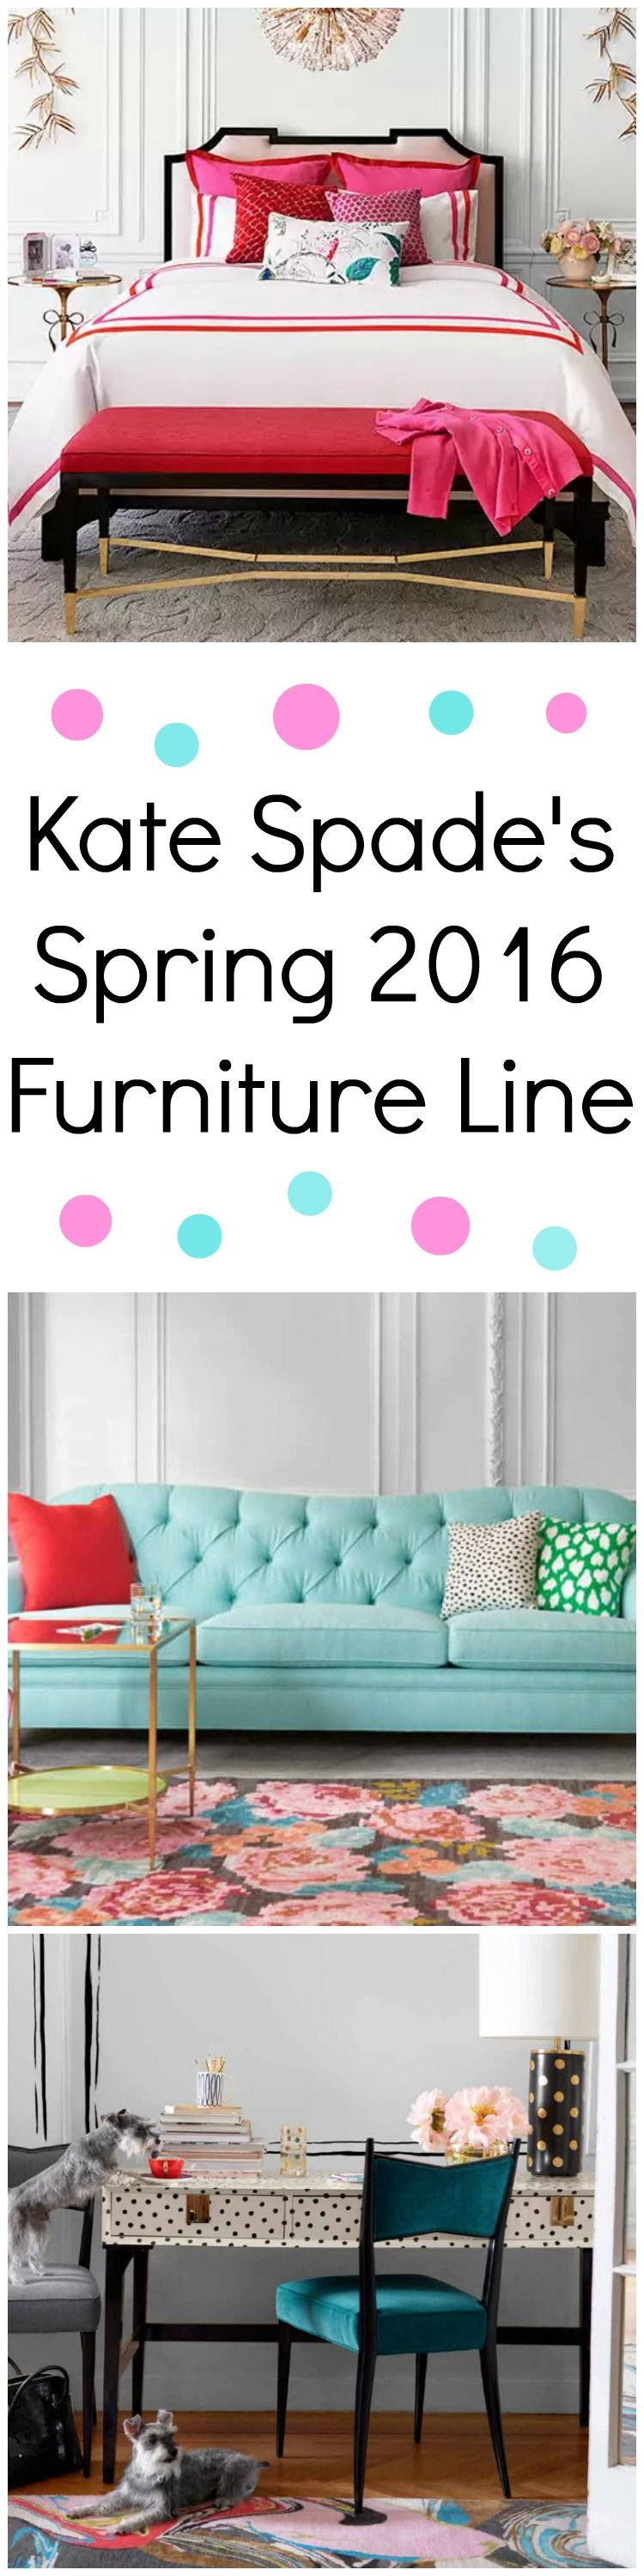 Kate Spade Just Launched the Most Playful Furniture Line | Happy ...